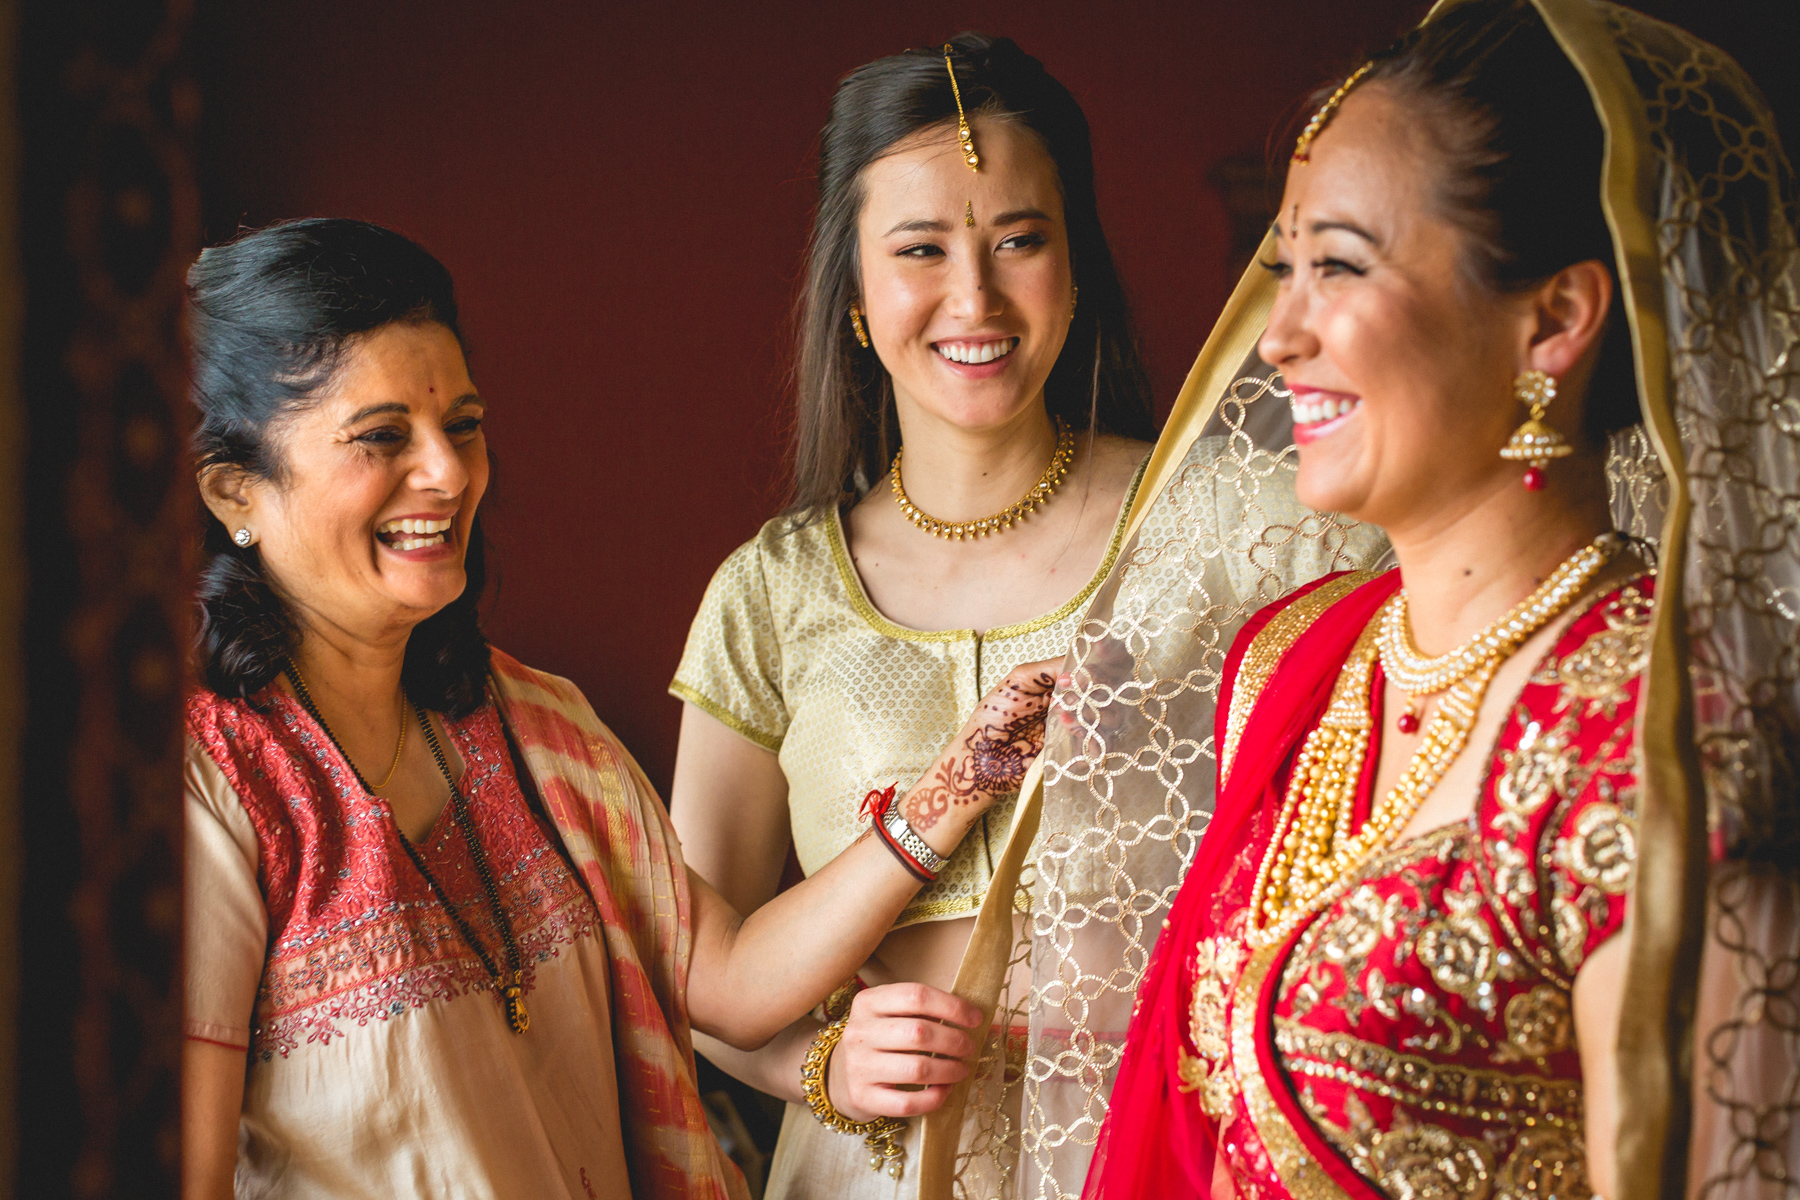 indian-south-asian-wedding-getting-ready-details-4.jpg